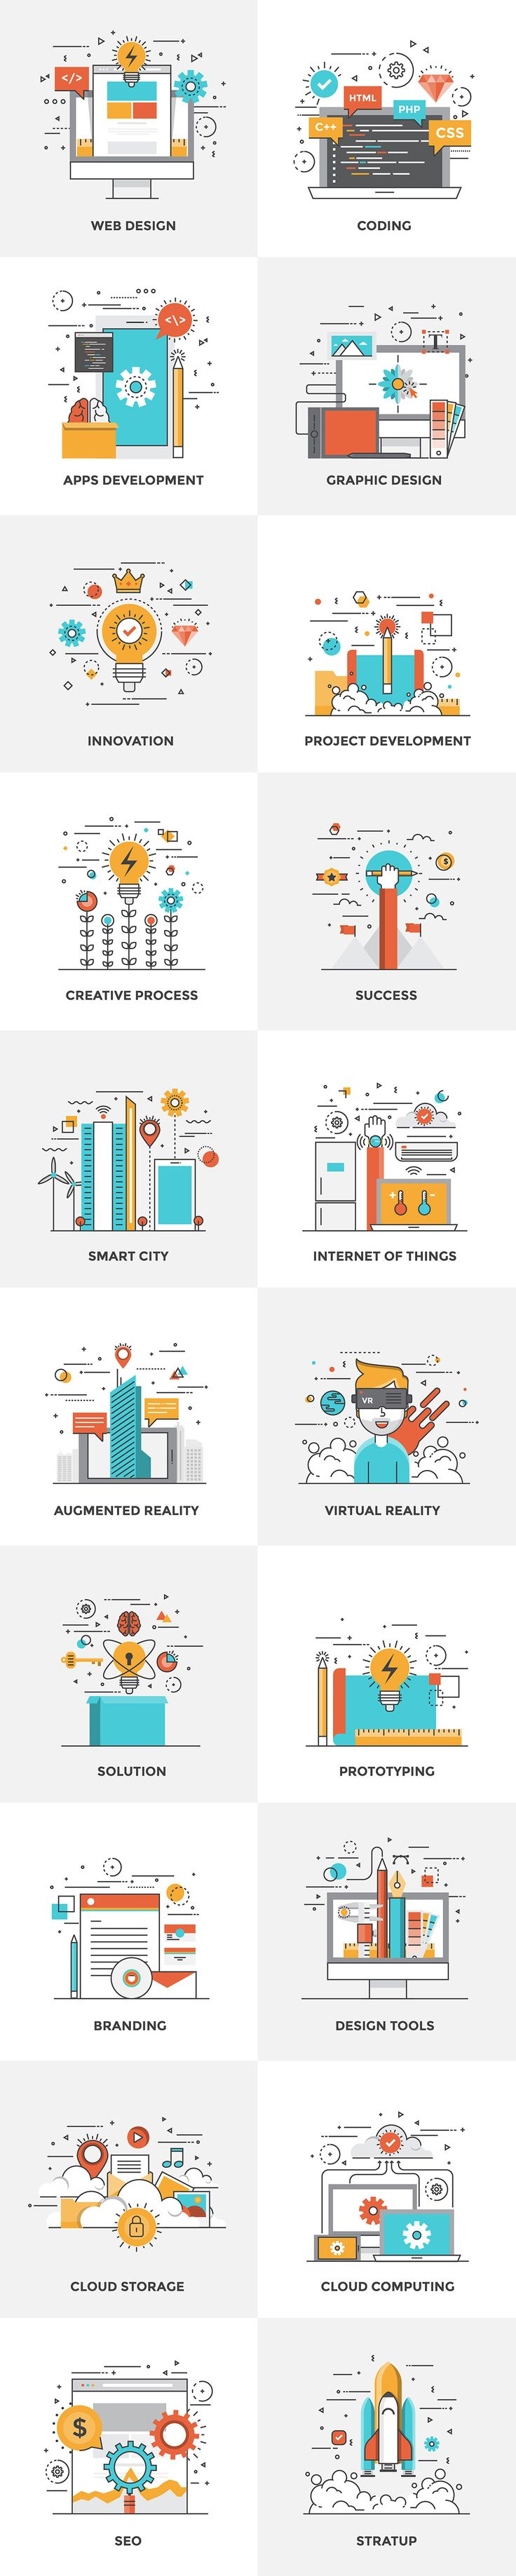 Set of Flat Color Line Design Concepts for creating amazing websites on various topics of Vr Glasses, Cloud Computing, Cloud Storage, Augmented Reality, Internet of Things, Smart city, Startup, Solutions, Prototyping, Web Design, Graphics Design, Tools, e…